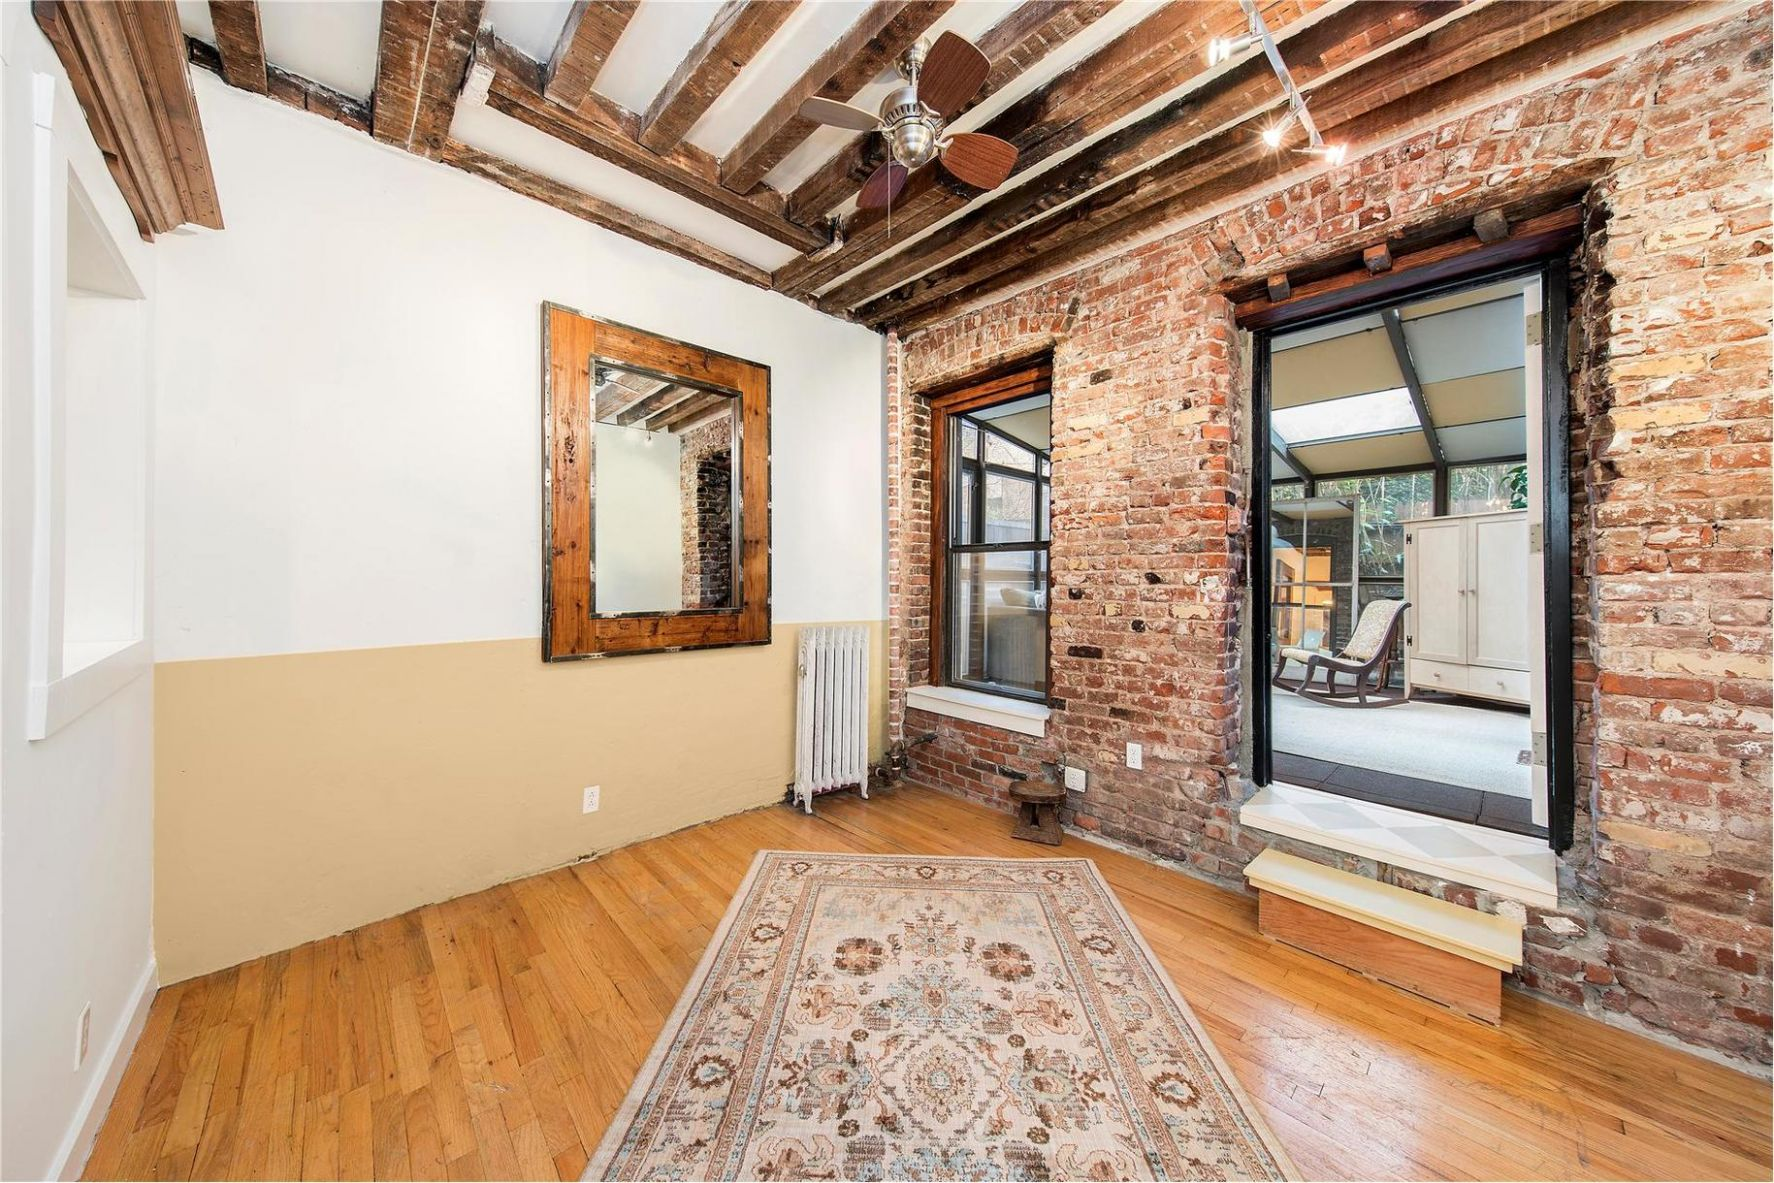 With a Cool Renovation and a Sunroom, This Tiny East Village Home ..